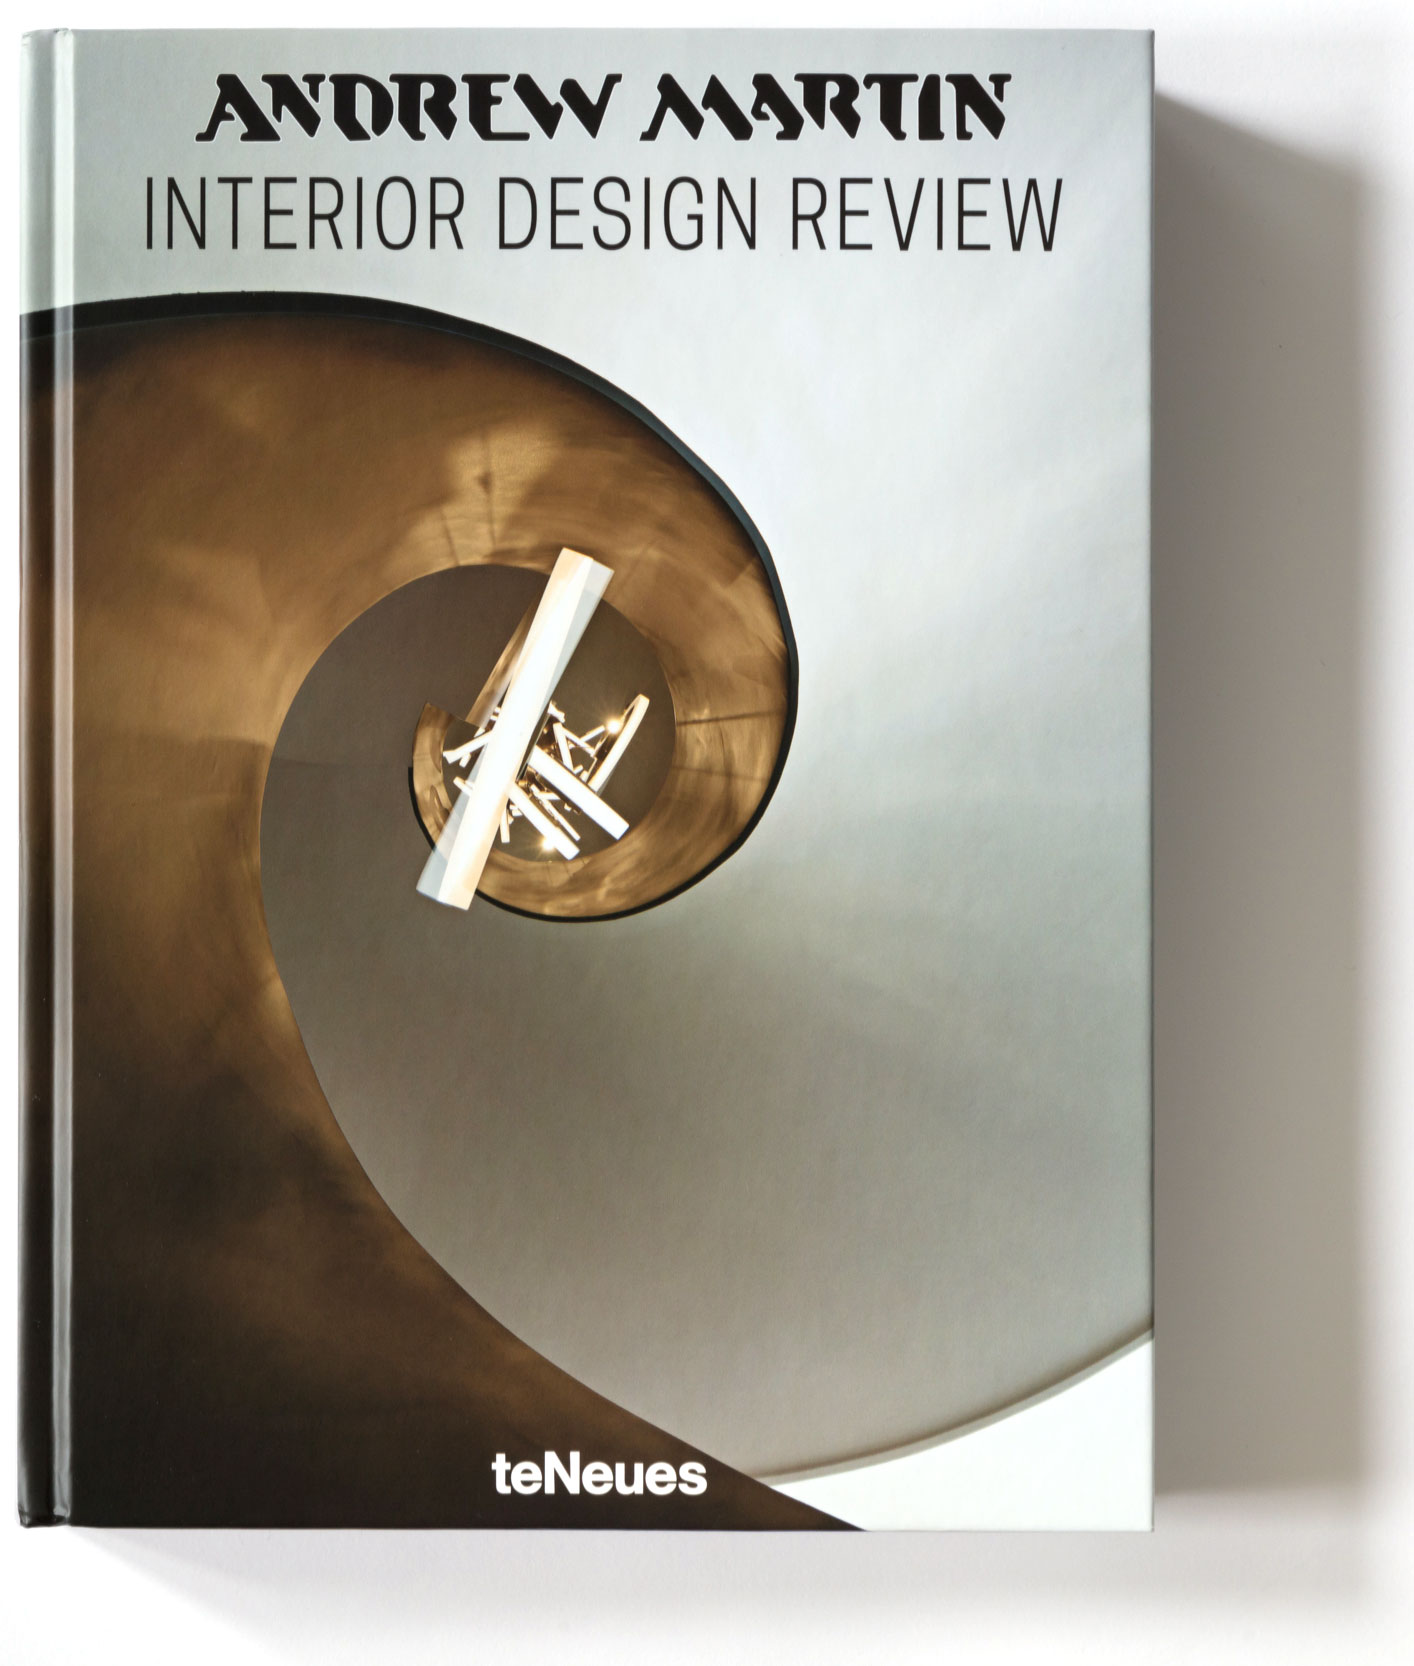 ANDREW MARTIN - INTERIOR DESIGN REVIEW - VOLUME 23 - TENEUS - 2019 1